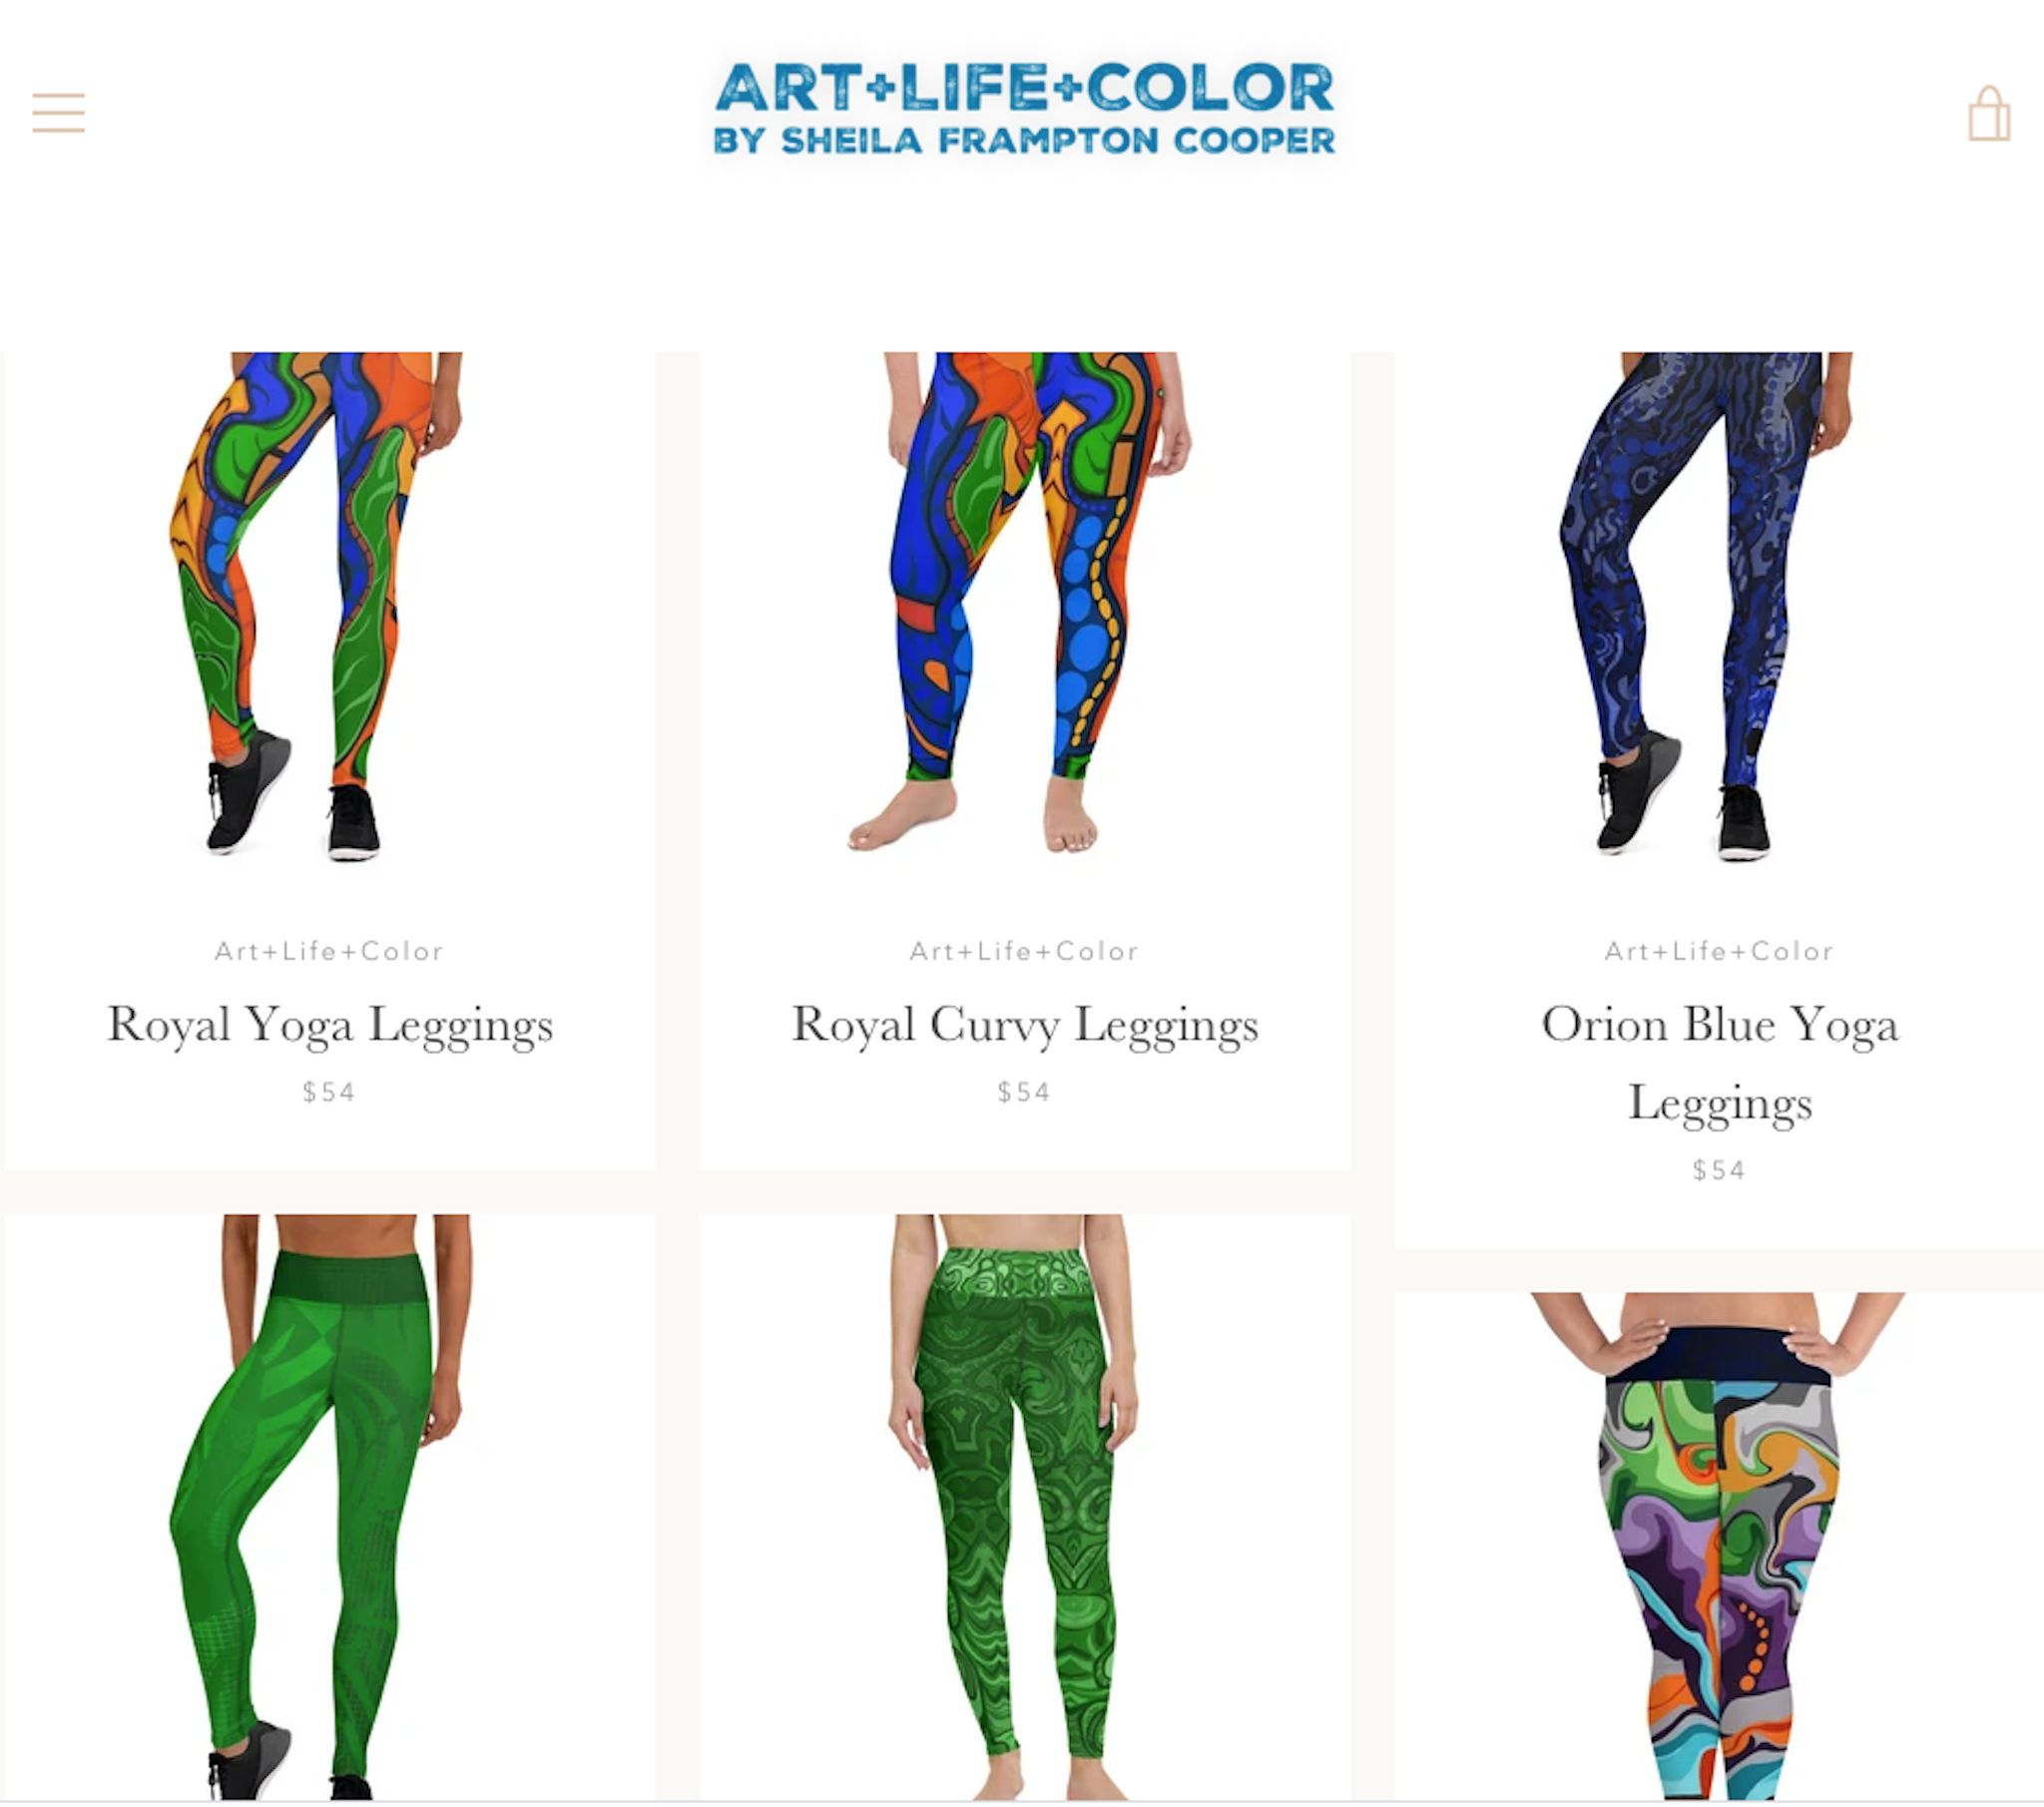 Art + Life + Color Products by Sheila Frampton Cooper